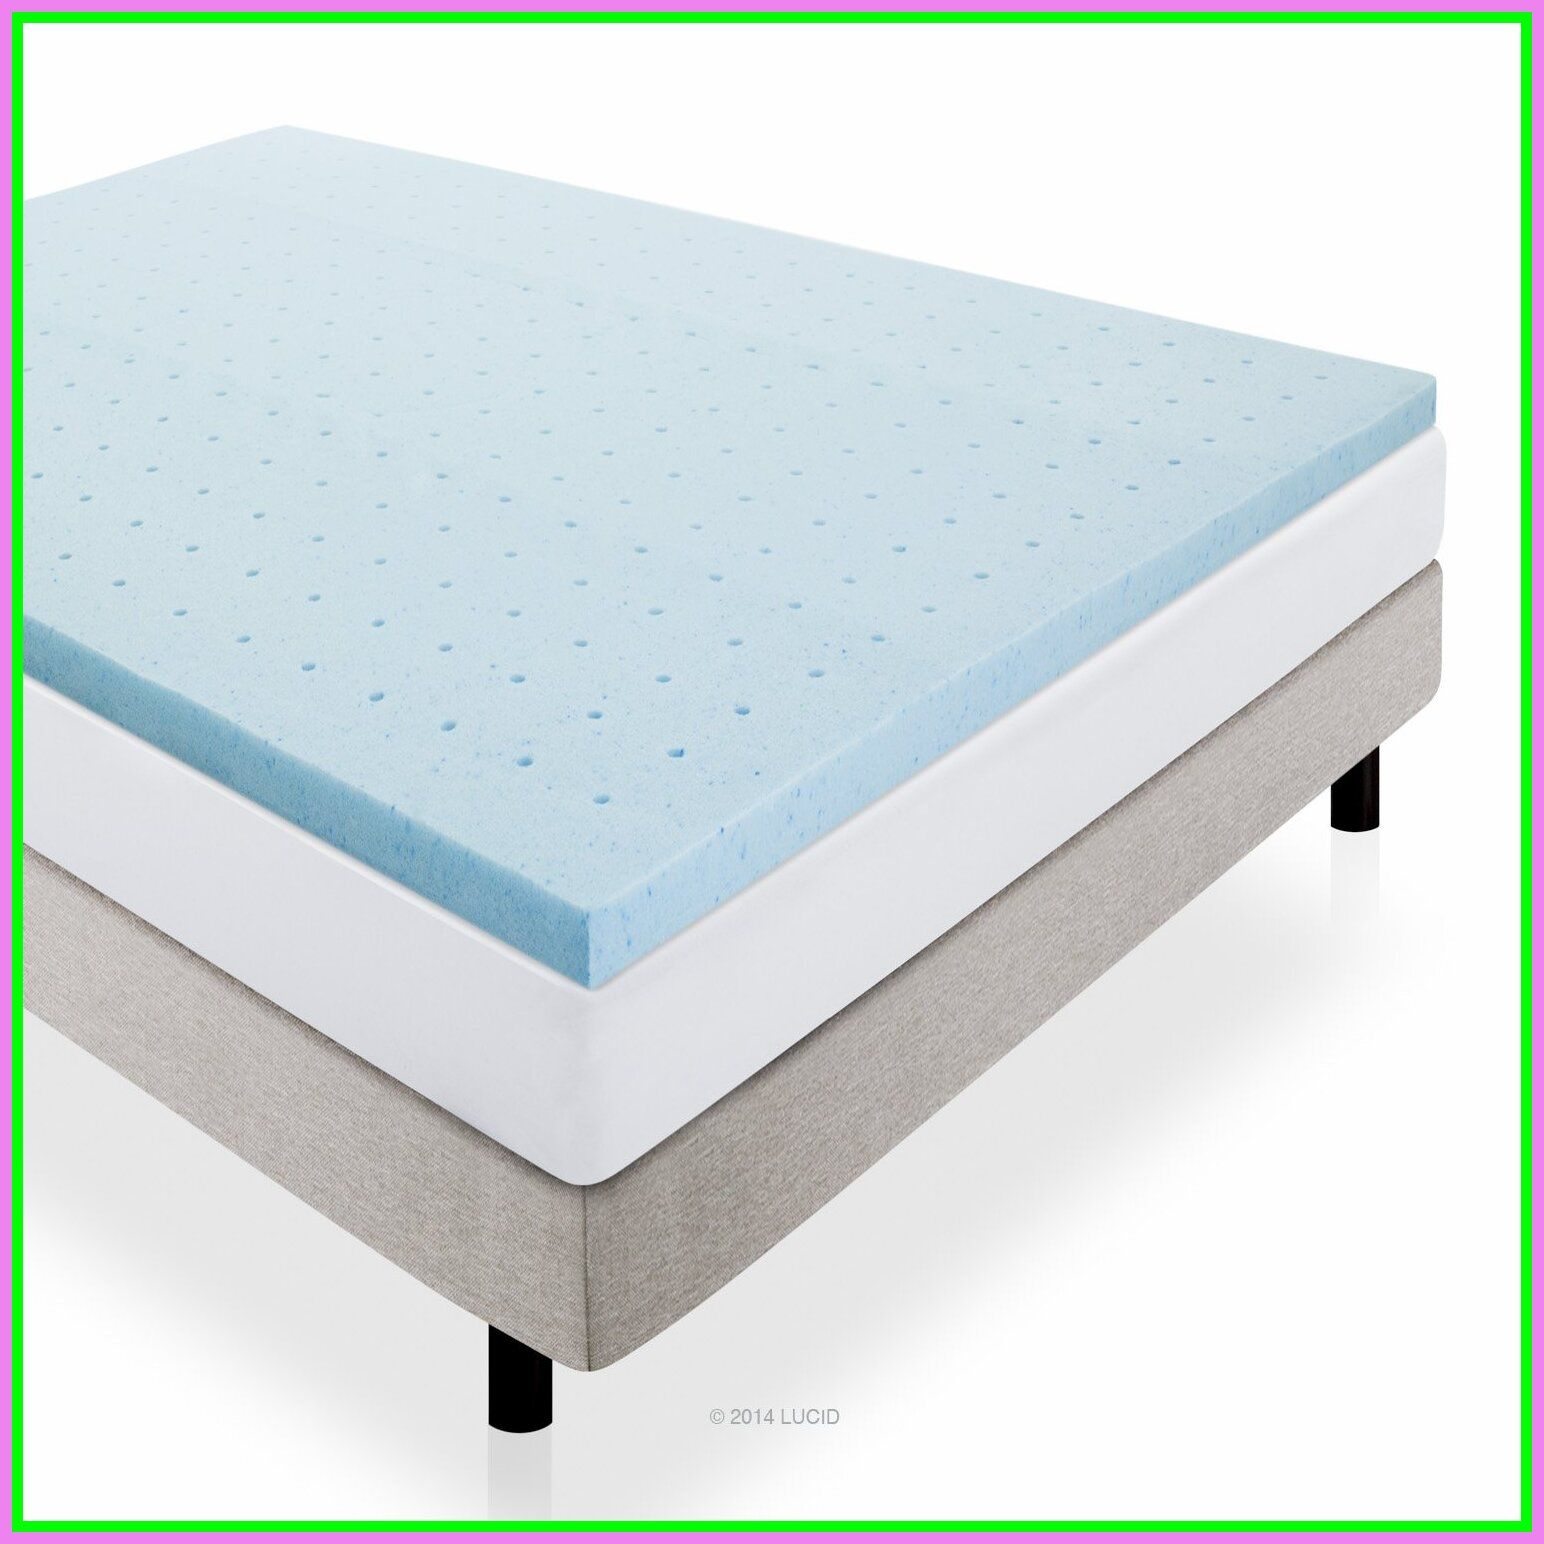 84 reference of mattress bed pads in 2020 Inspo, Bed